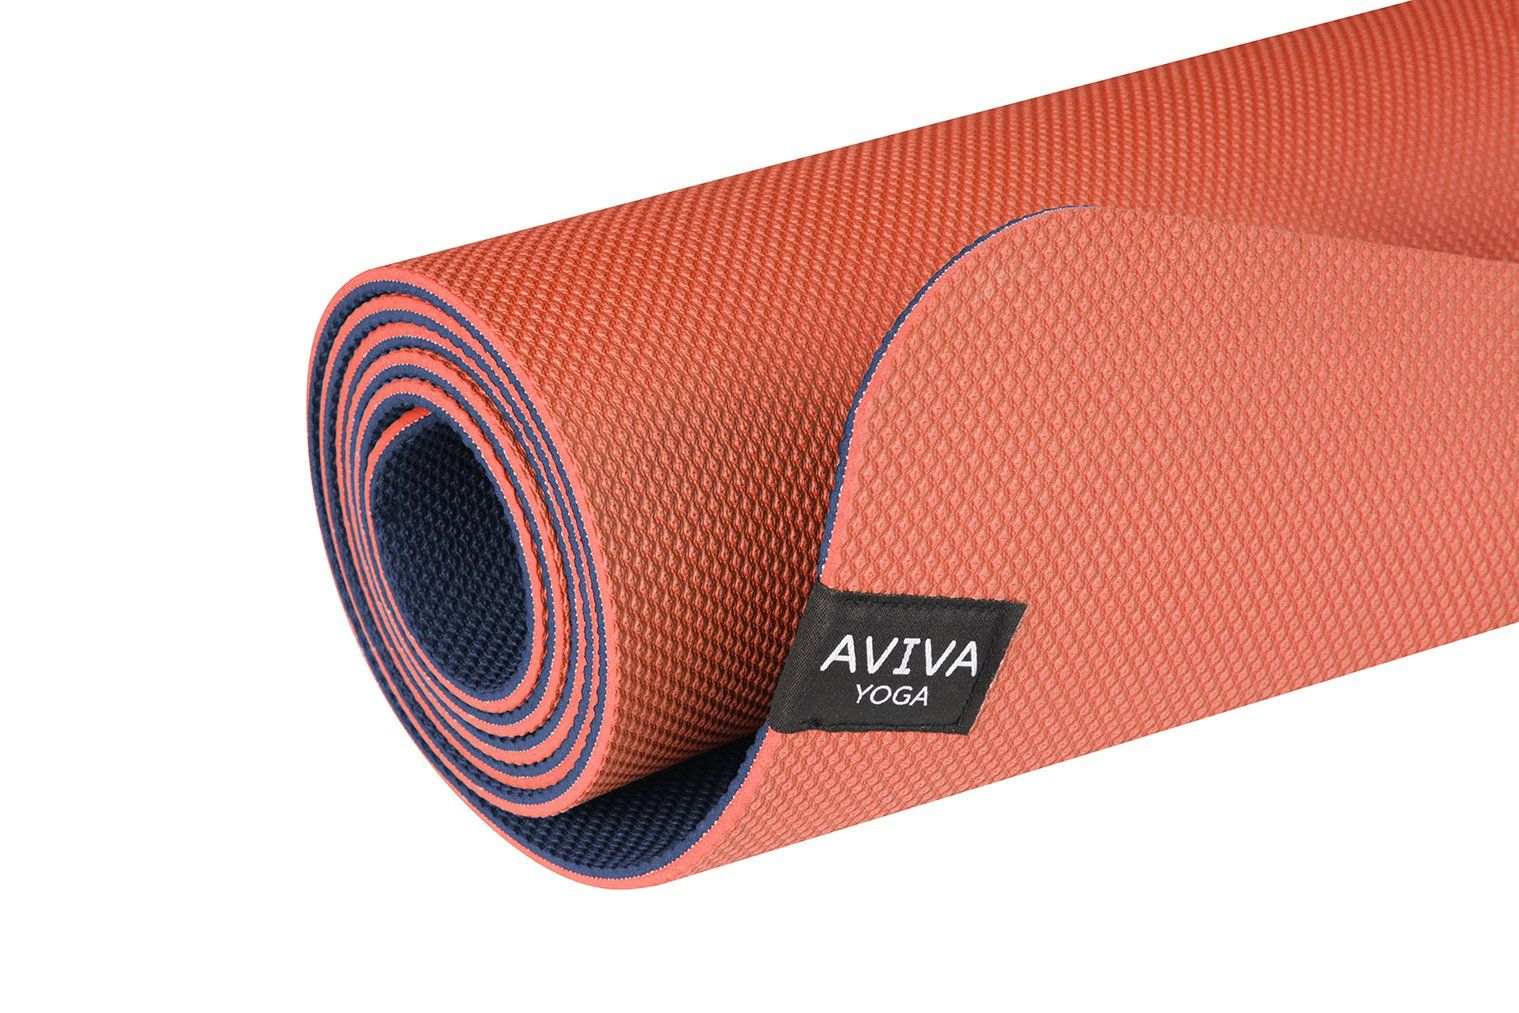 Aviva Yoga Reversible Tpe Foam Mat With Embossed Center Markings 5mm Thick Non Slip Yoga Mat 72 X 24 Inch Orange And Blue Workout Accessories Yoga Yoga Mat